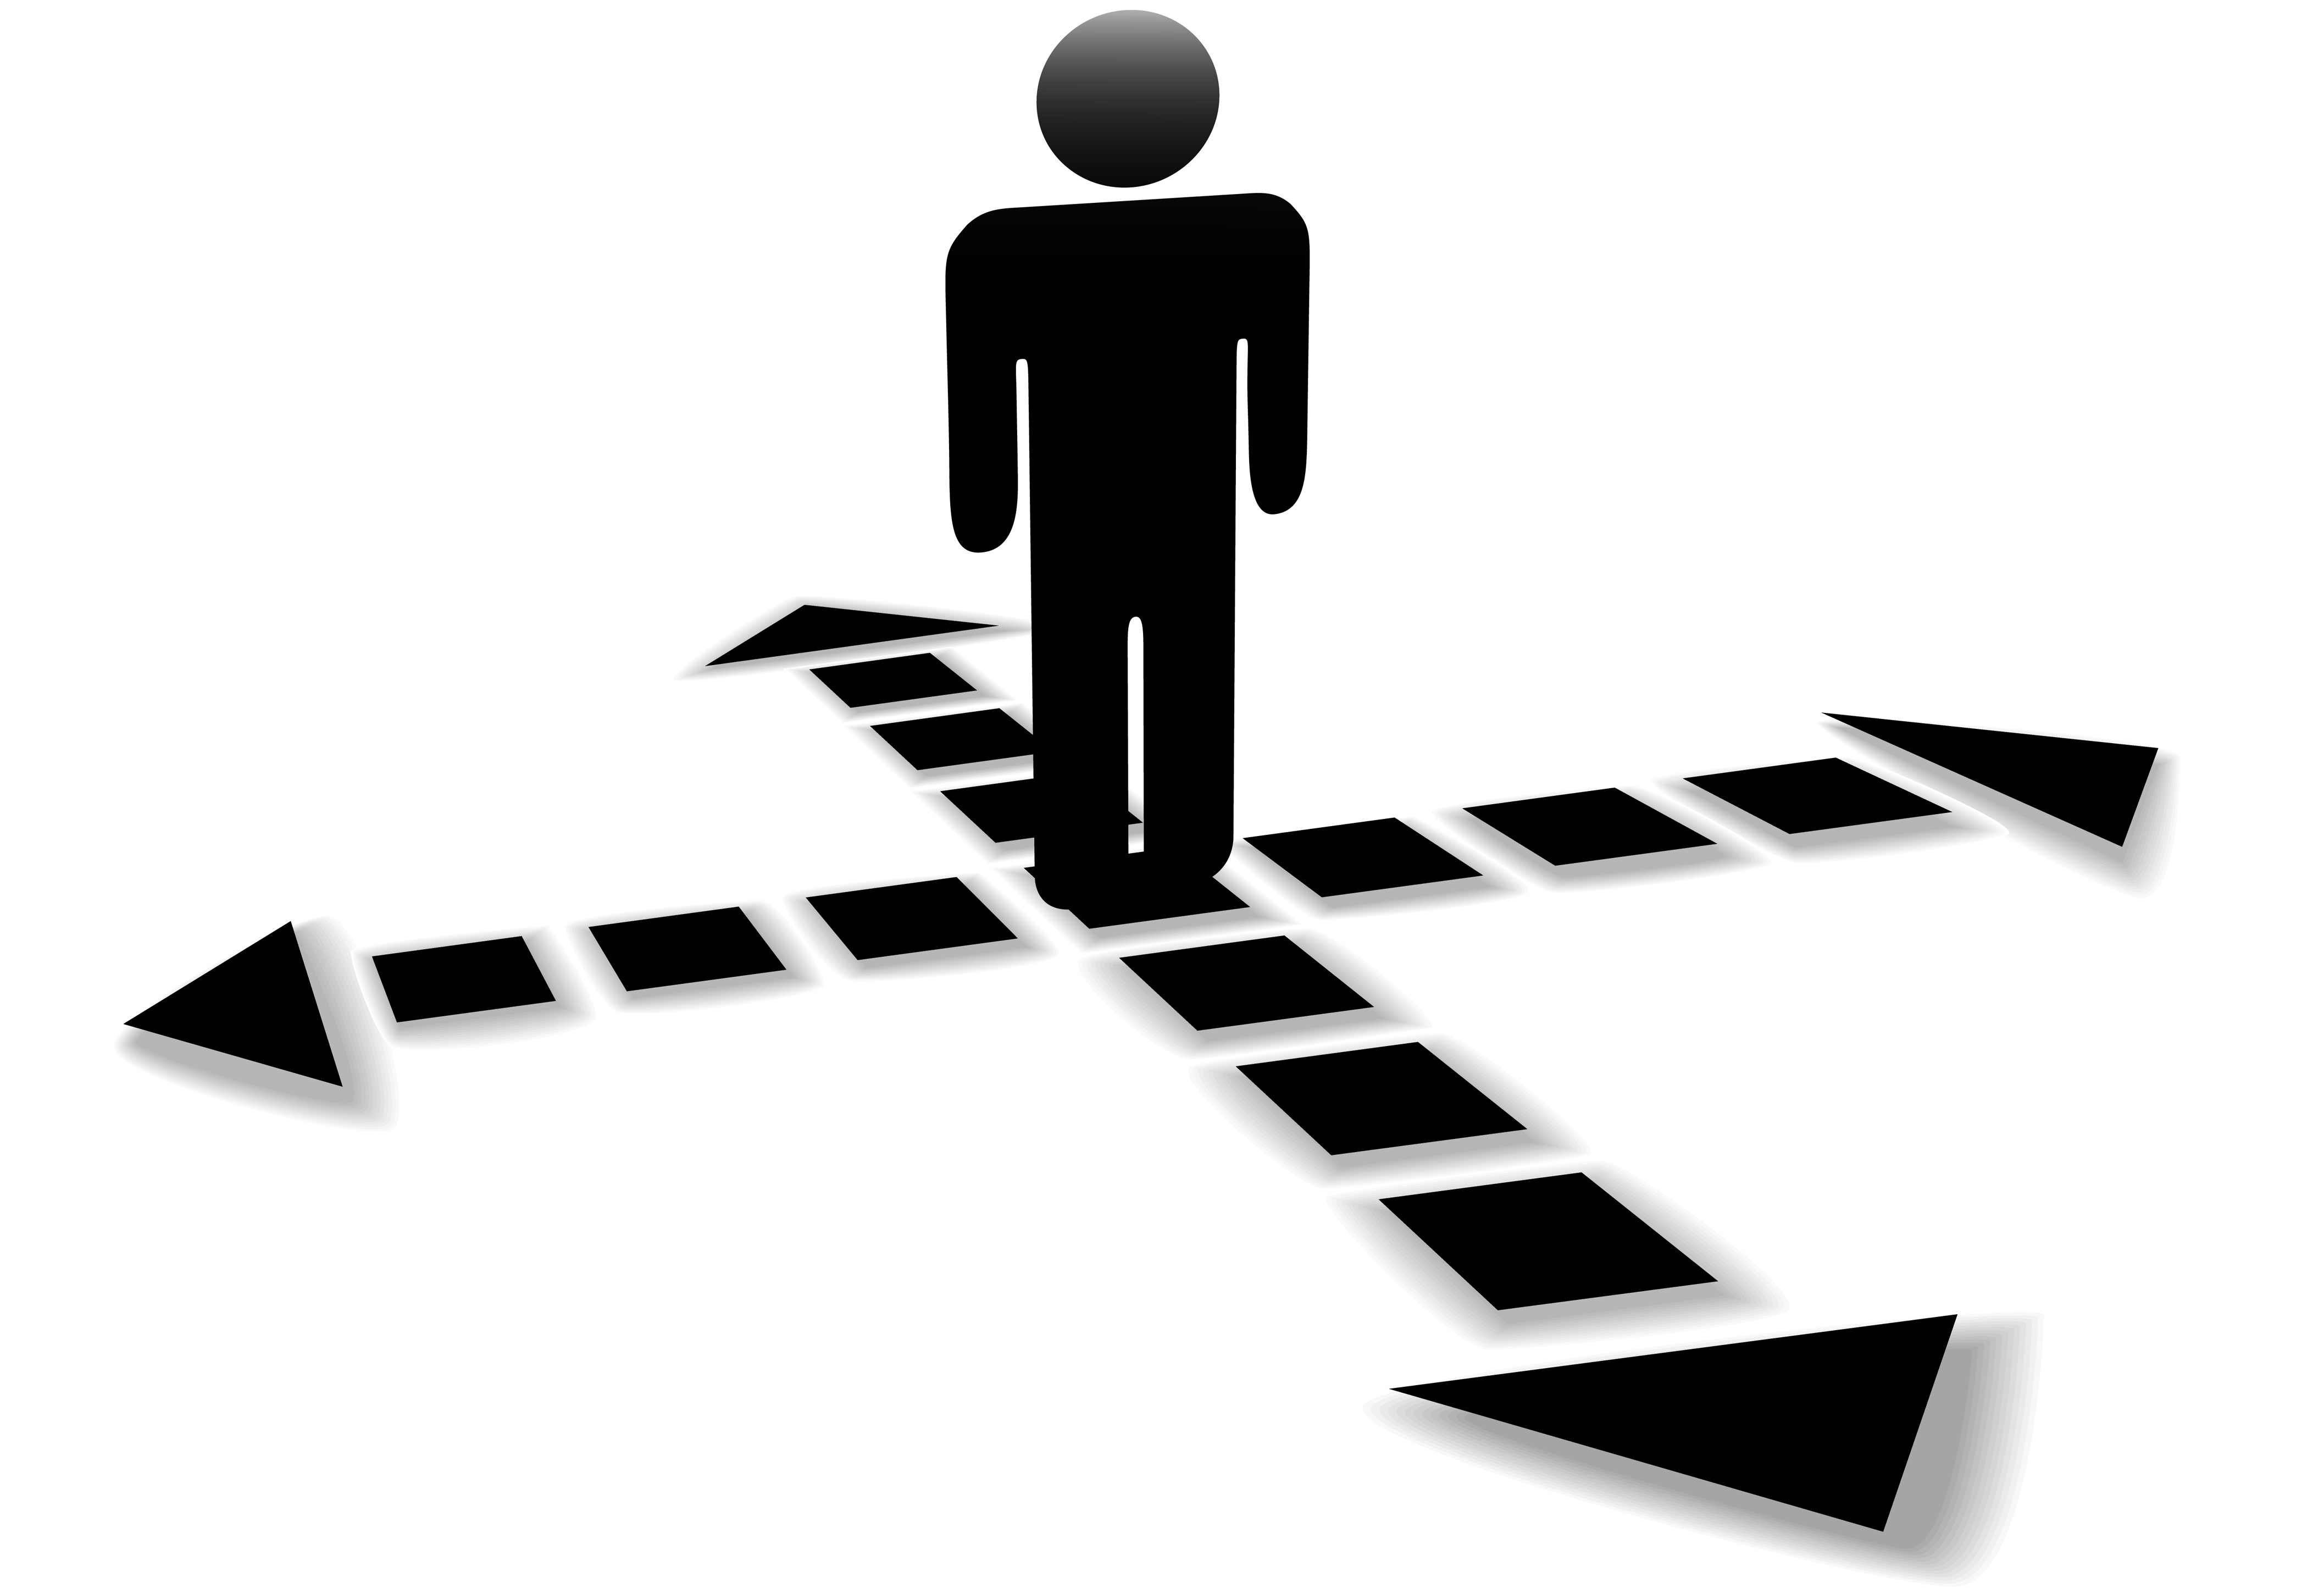 Pathway clipart multiple path Found multiple right have I